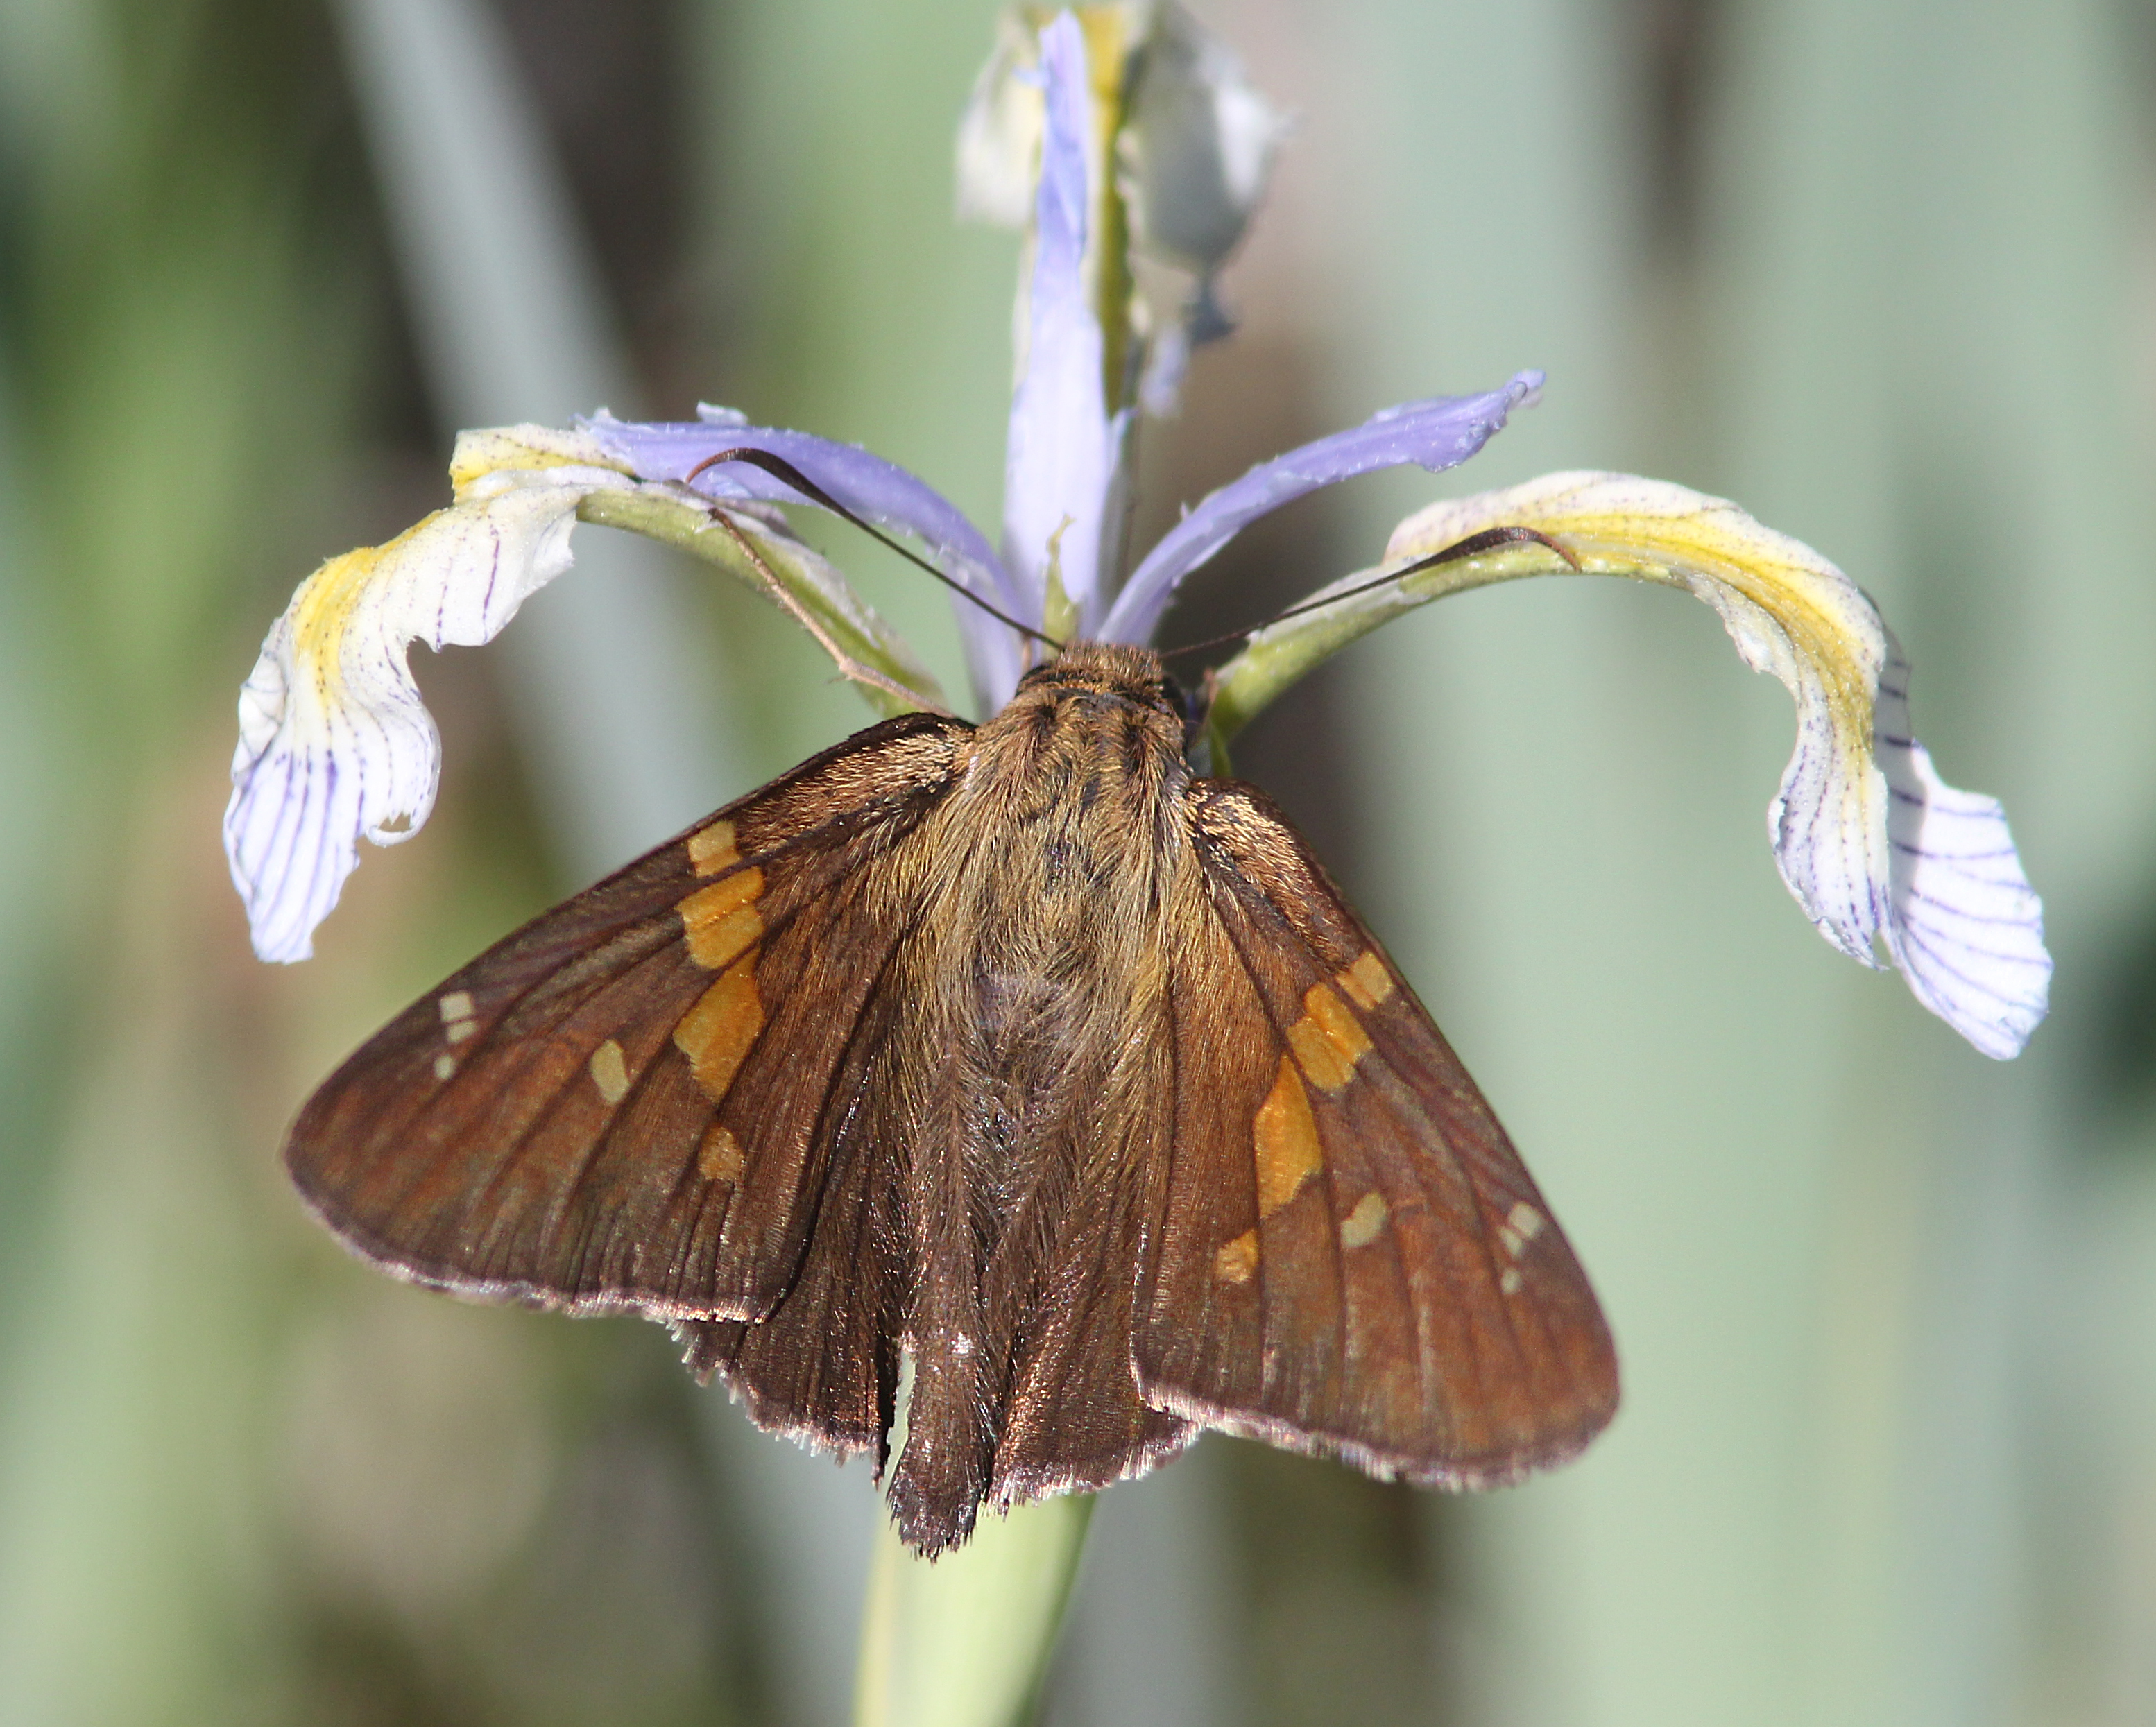 SKIPPER, SILVER-SPOTTED(6-14-13) 8500 ft, alpine divide c g, 4 m south of alpine, apache co, az -01, Animal, Butterfly, Depth of field, Field, HQ Photo